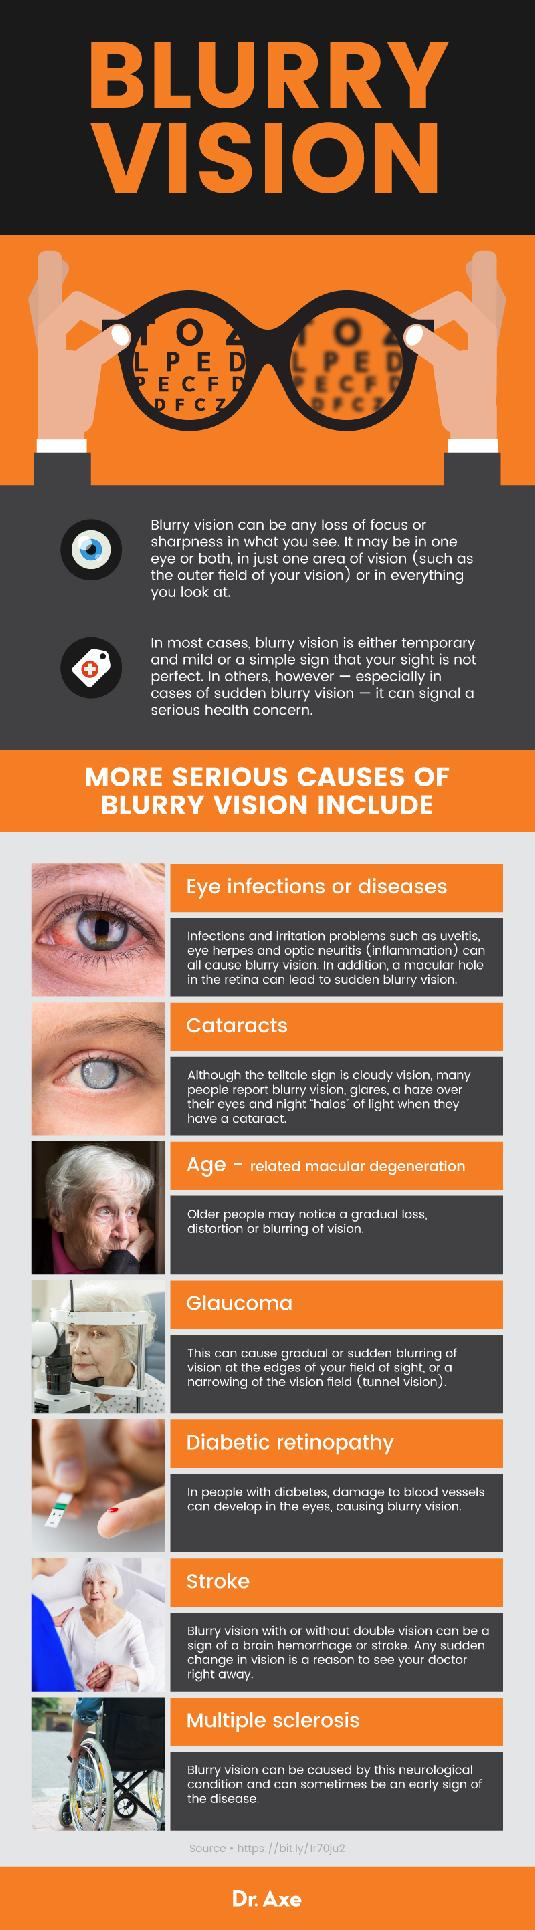 patient diabetes reports blurred vision eye